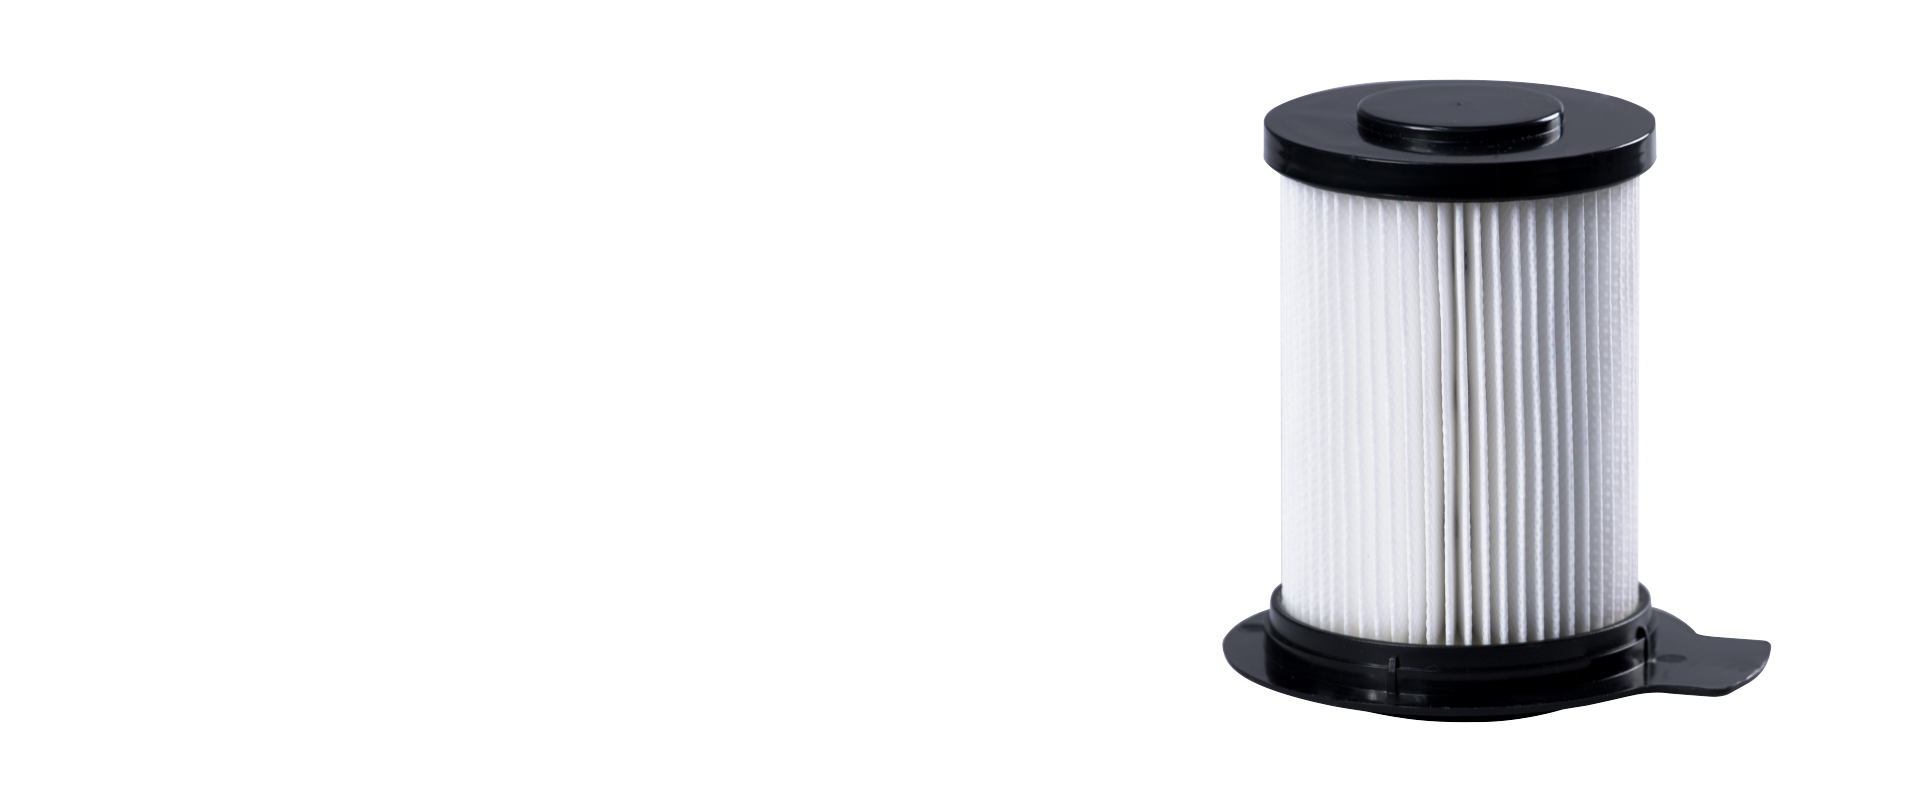 VY-204 HEPA FILTER